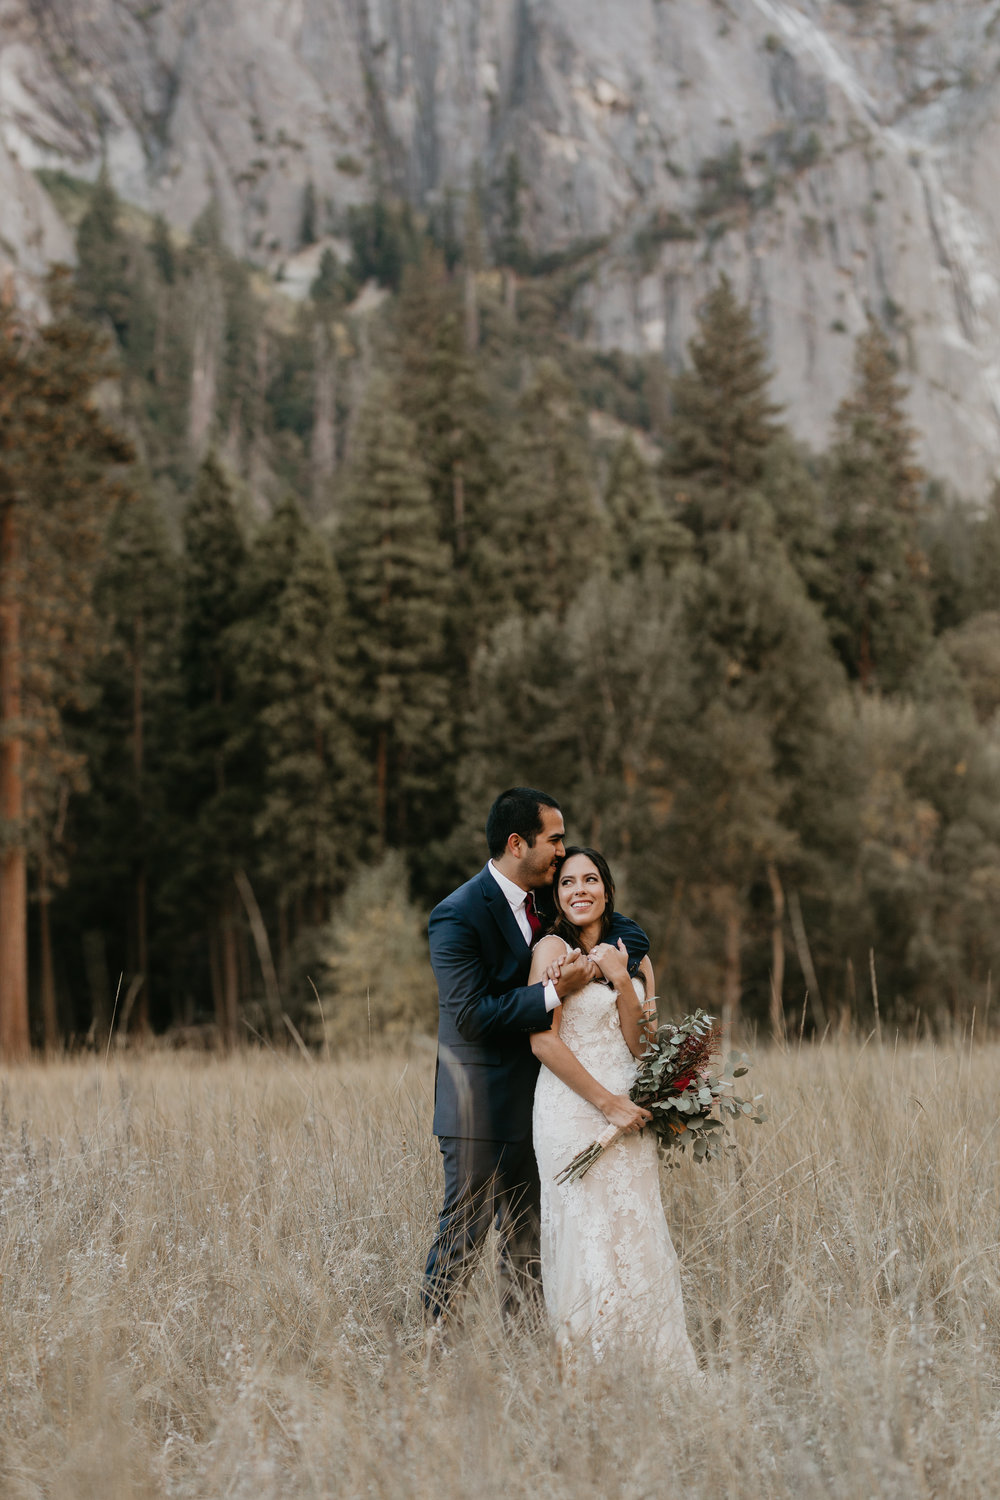 nicole-daacke-photography-intimate-elopement-wedding-yosemite-national-park-california-taft-point-sunset-photos-yosemite-valley-tunnel-view-first-look-sunrise-golden-granite-hiking-adventure-wedding-adventurous-elopement-photographer-15.jpg